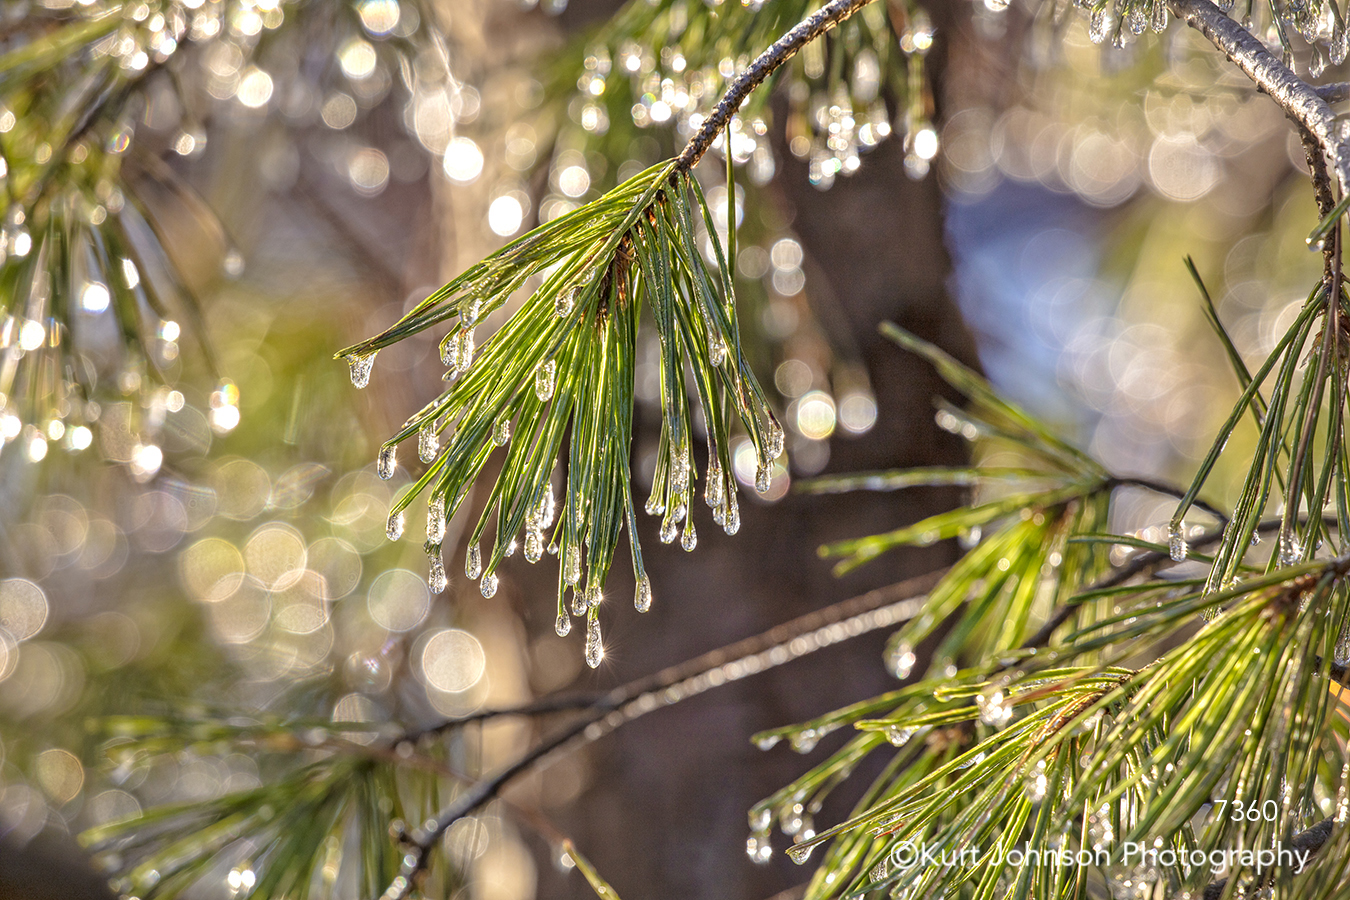 green pine needle needles tree branches trees water ice drops detail macro close up